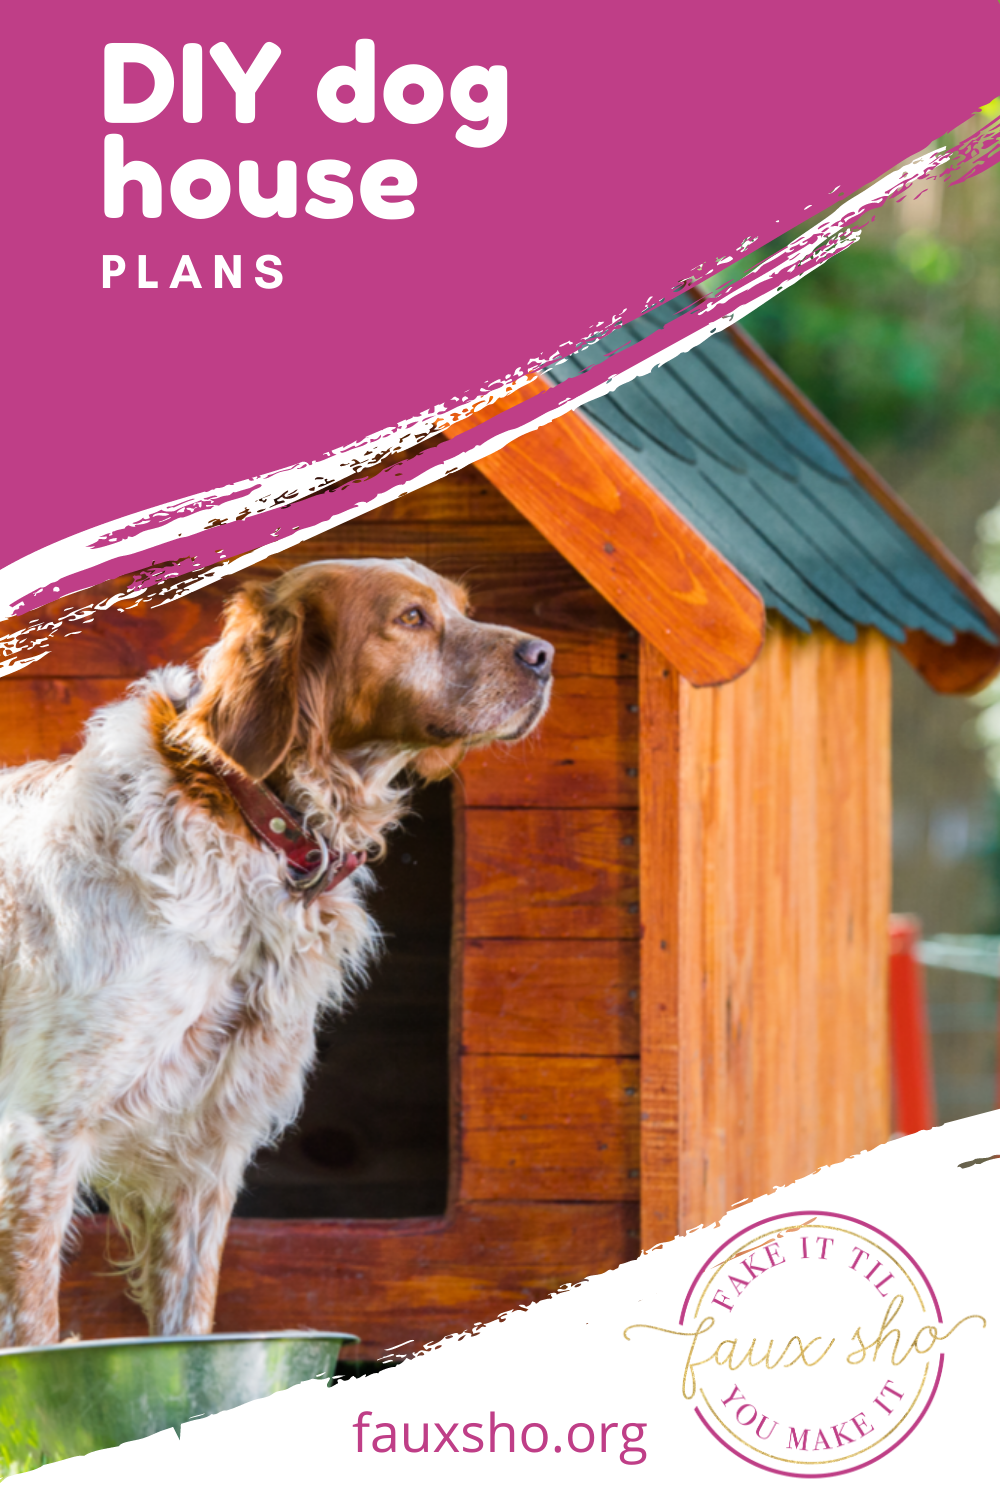 Just because you spent a lot of money on your new puppy, doesn't mean you have to spend a ton on their dog house. Come check out these cheap and easy DIY dog houses! #FauxShoBlog #CheapDIYDogHouses #EasyDIYDogHouse #DIYOutdoorDogHouses